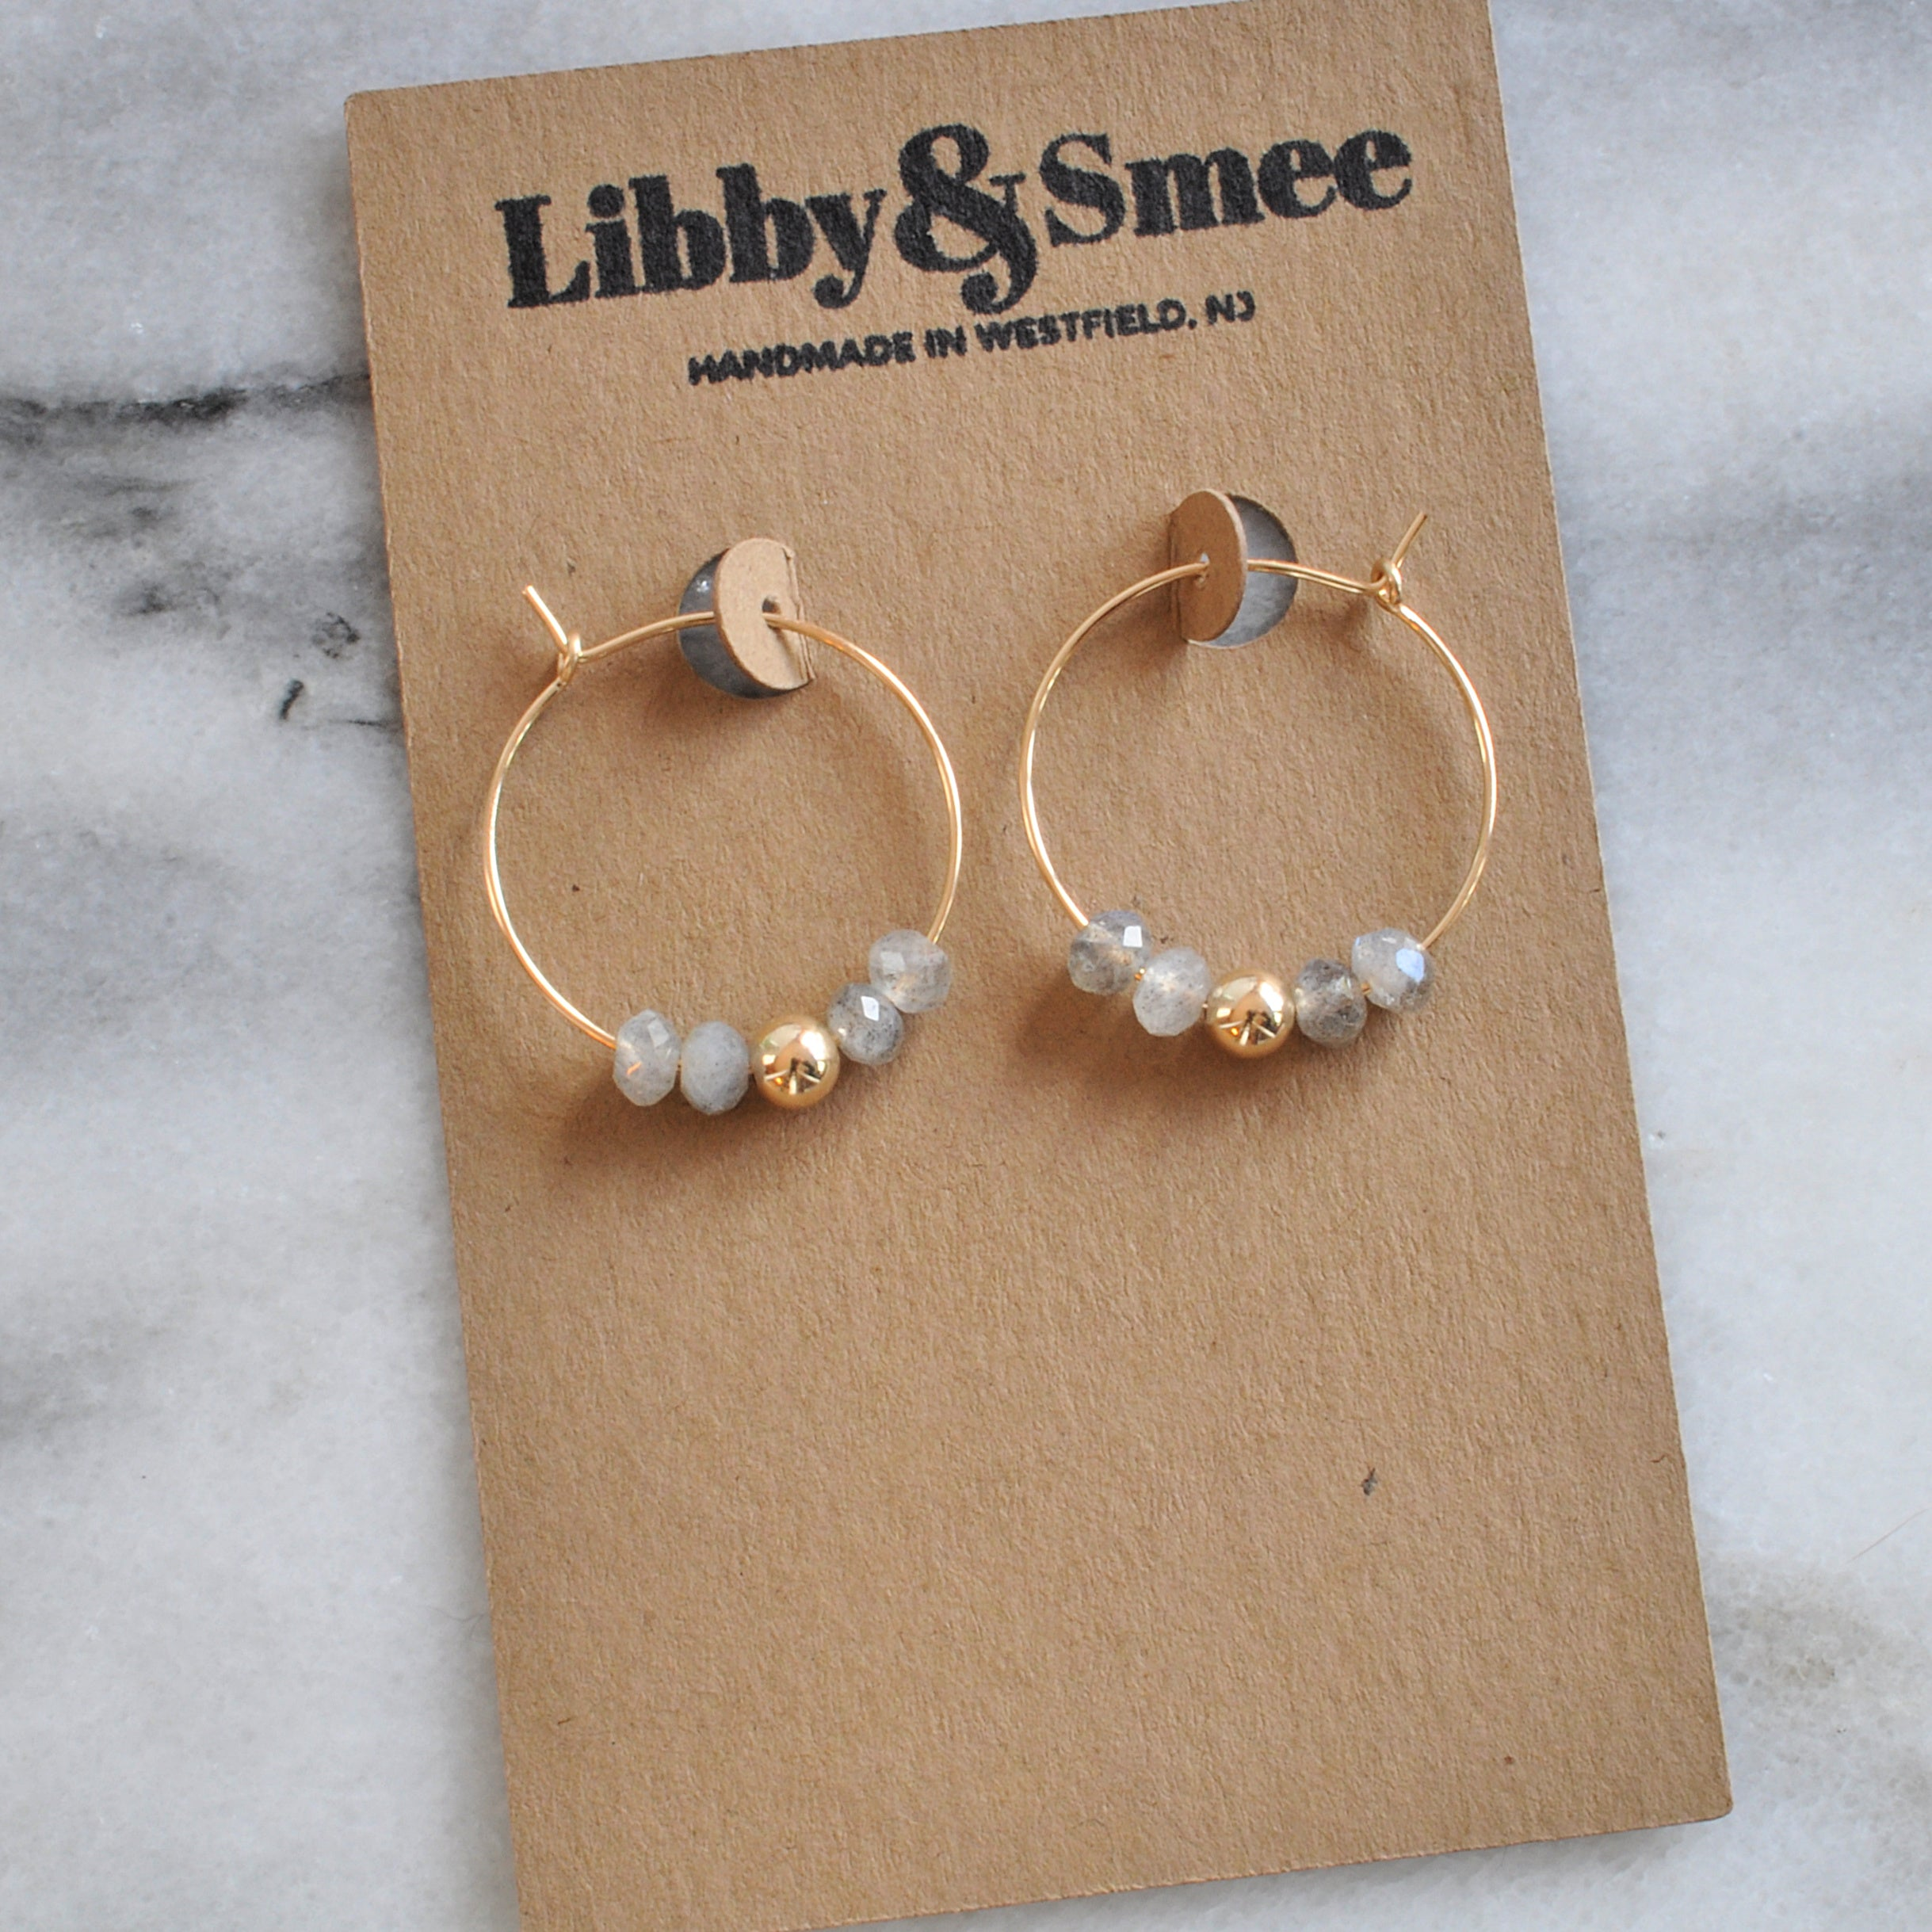 Libby & Smee Gold Filled 25mm Labradorite Gemstone Hoop Earrings